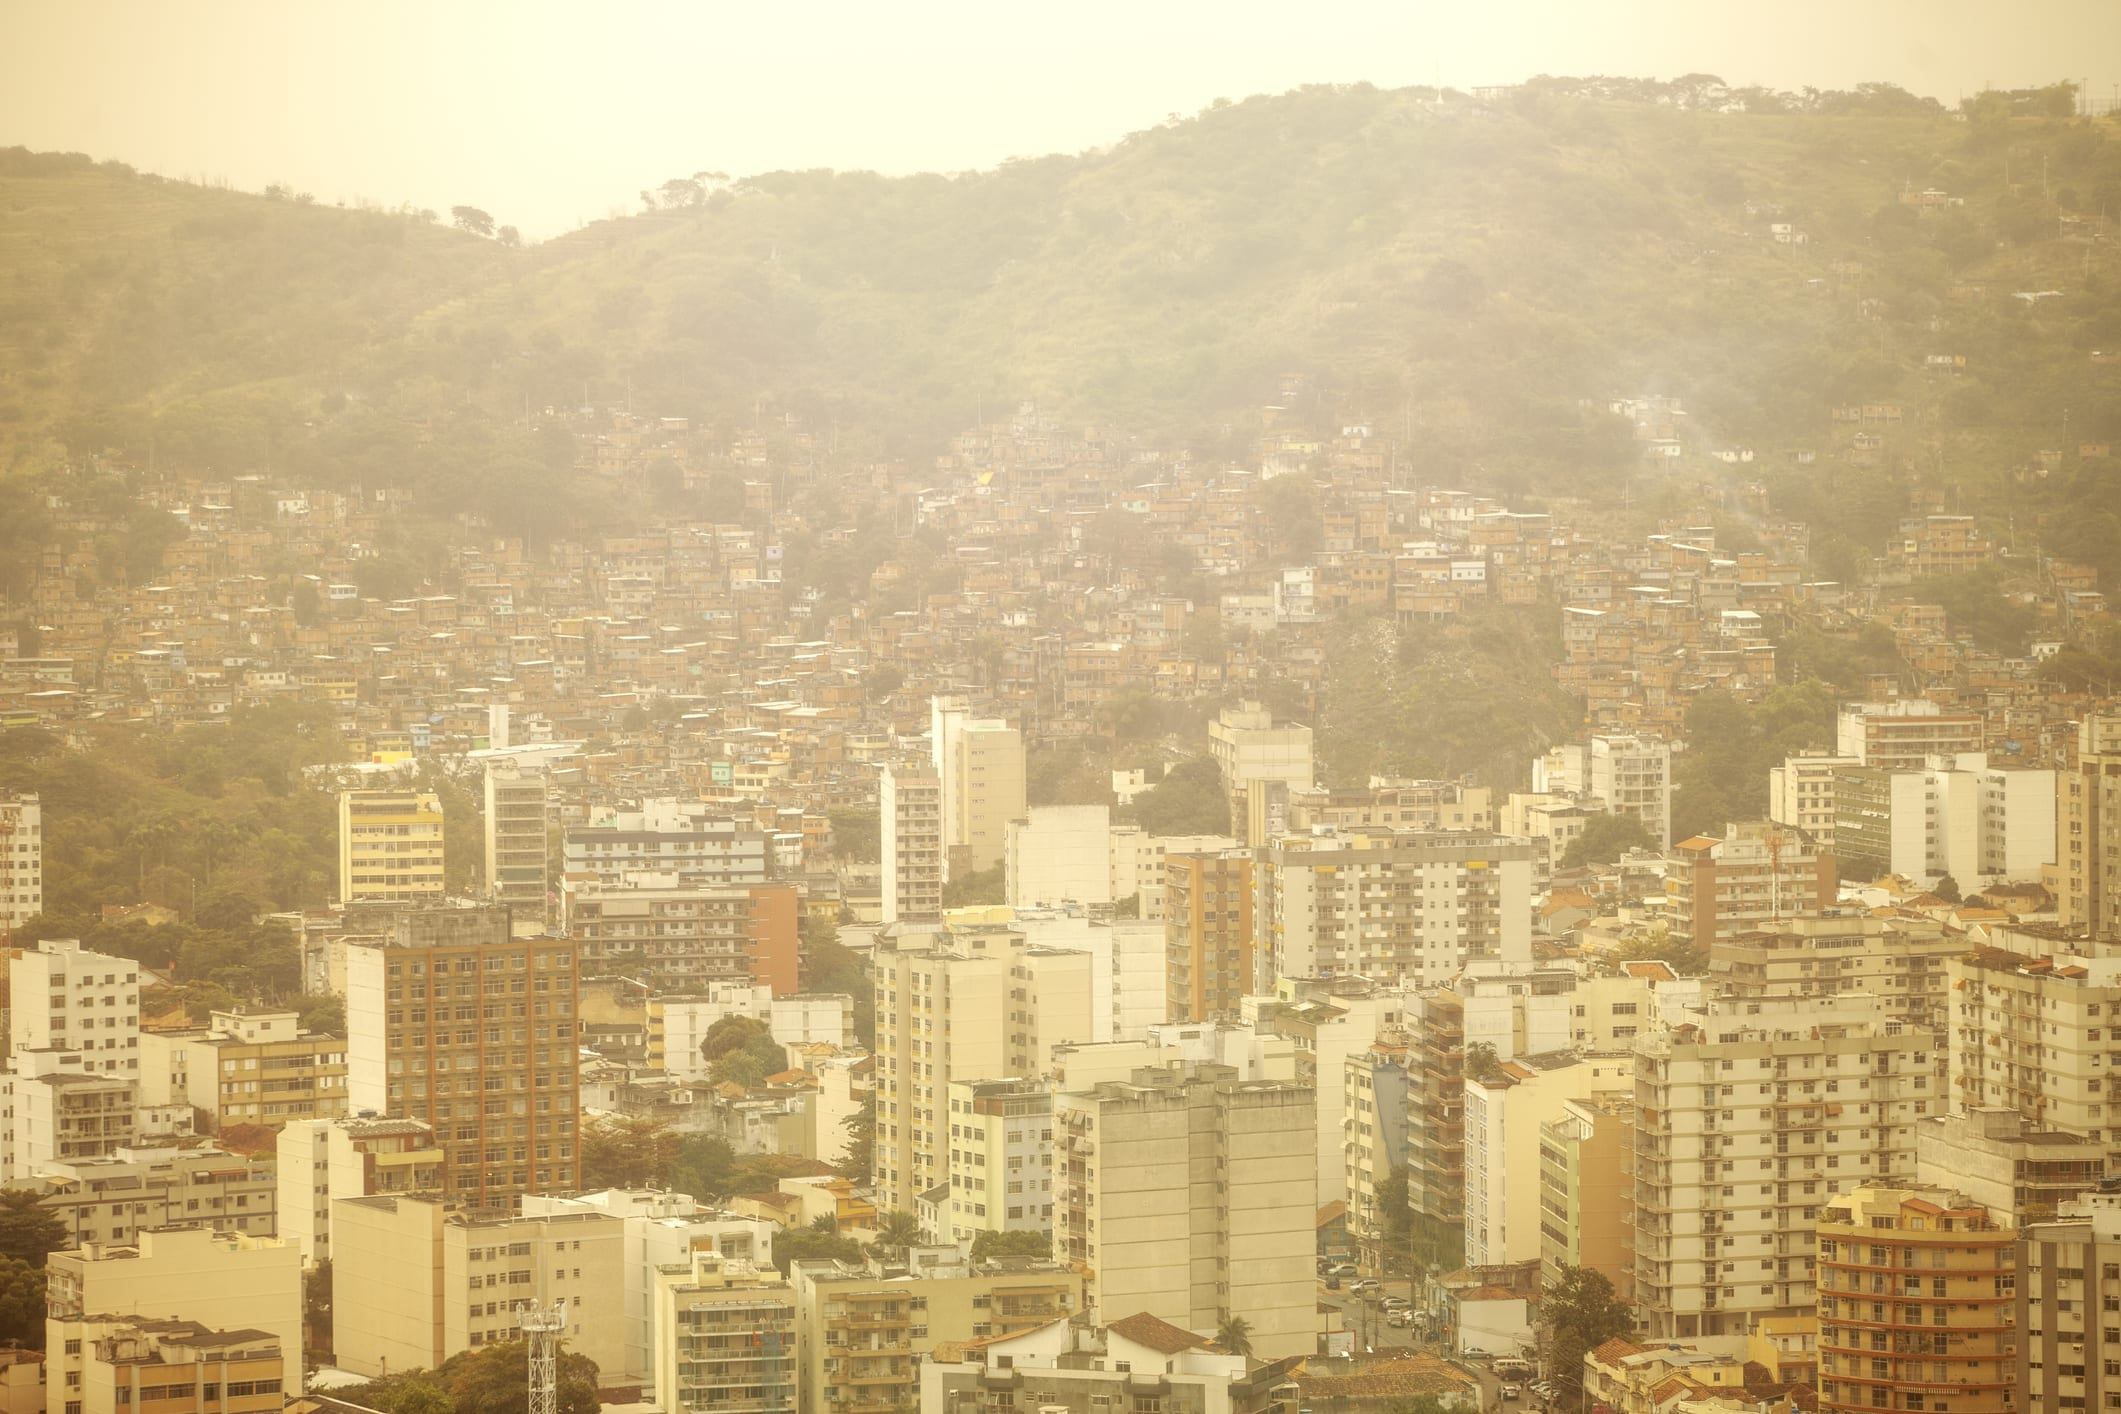 Residential buildings and the favela in the background